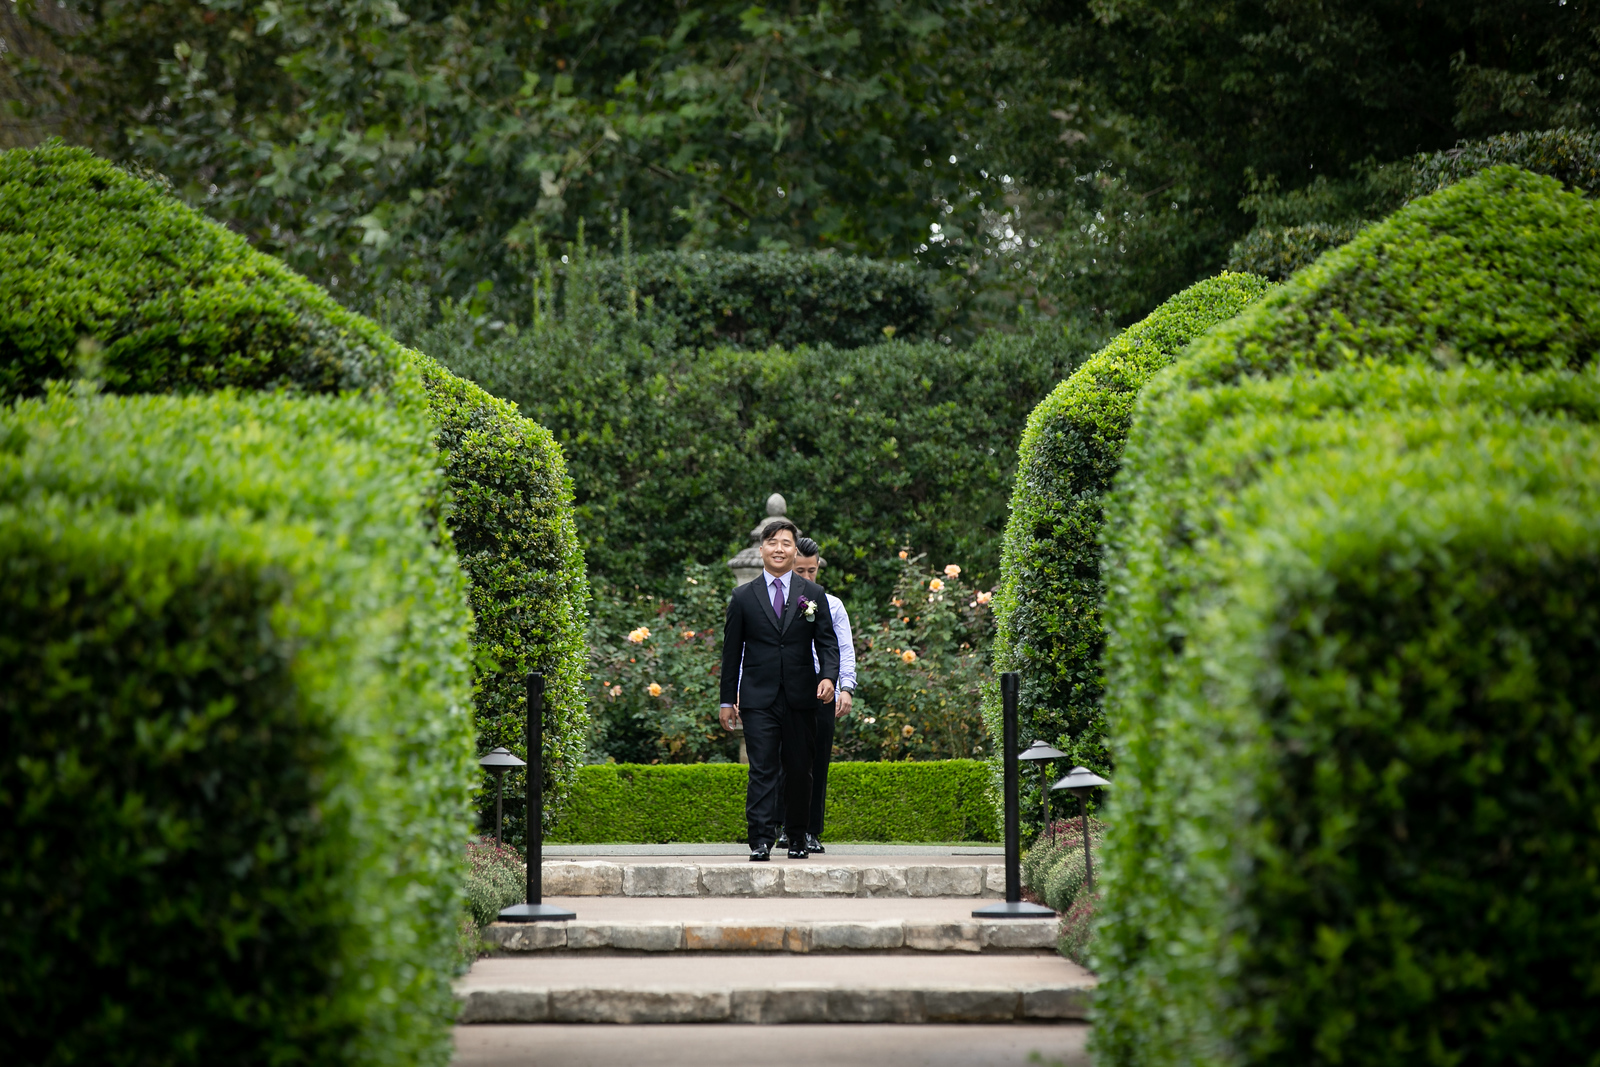 A groom walking down the aisle of his wedding through green hedges and gardens